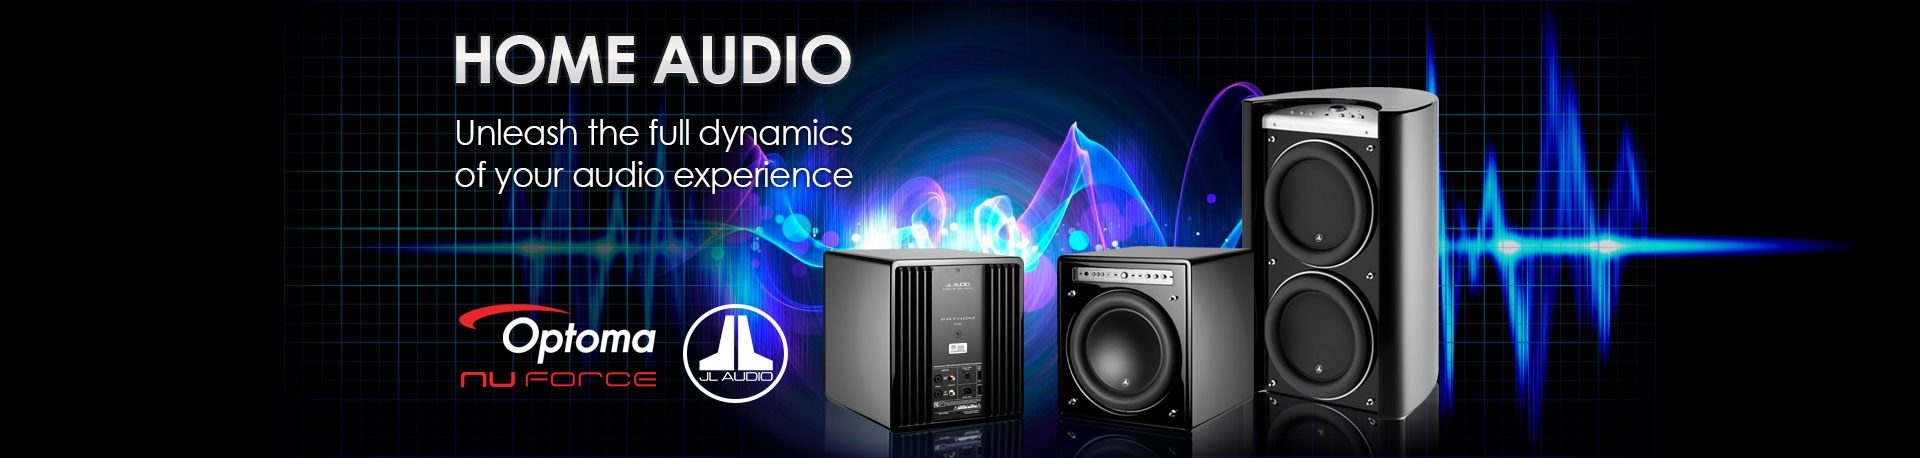 Av Arts Home Audio